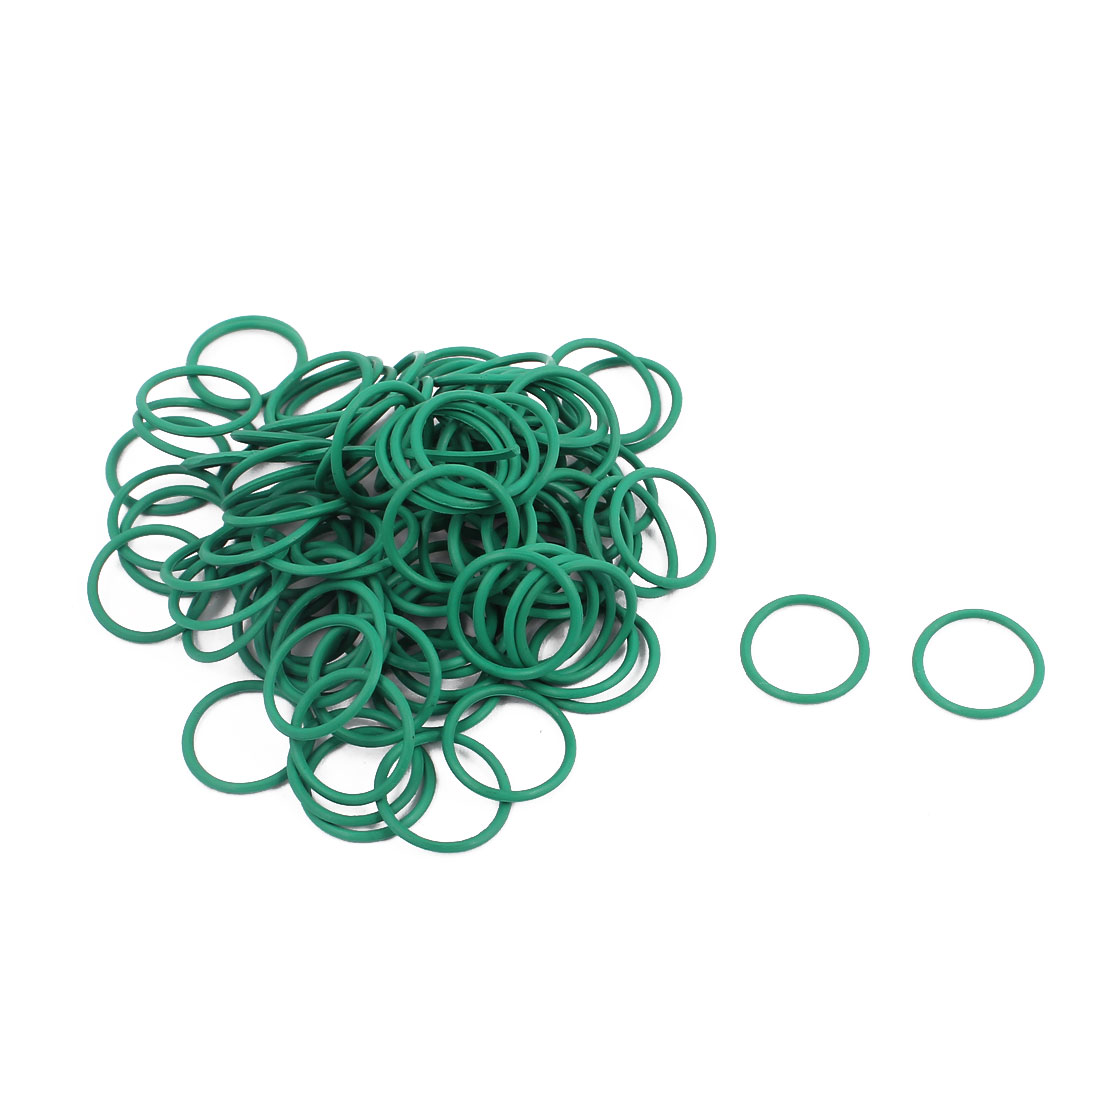 100Pcs 12mm x 1mm FKM O-rings Heat Resistant Sealing Ring Grommets Green